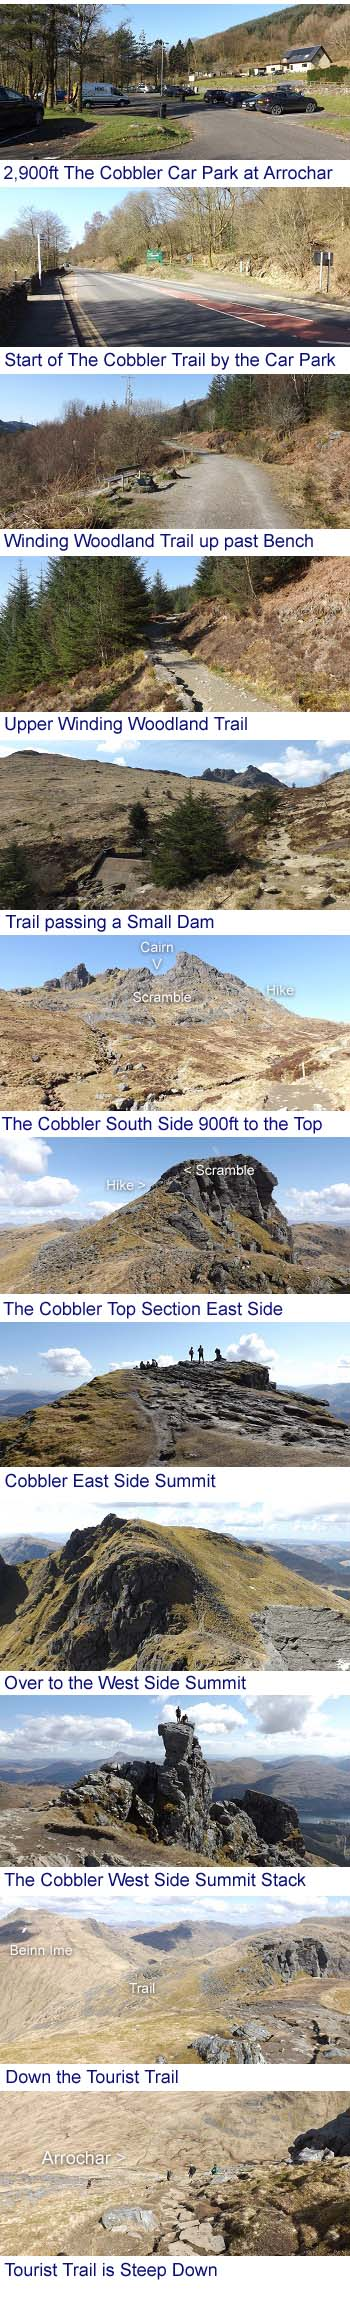 The Cobbler Photos